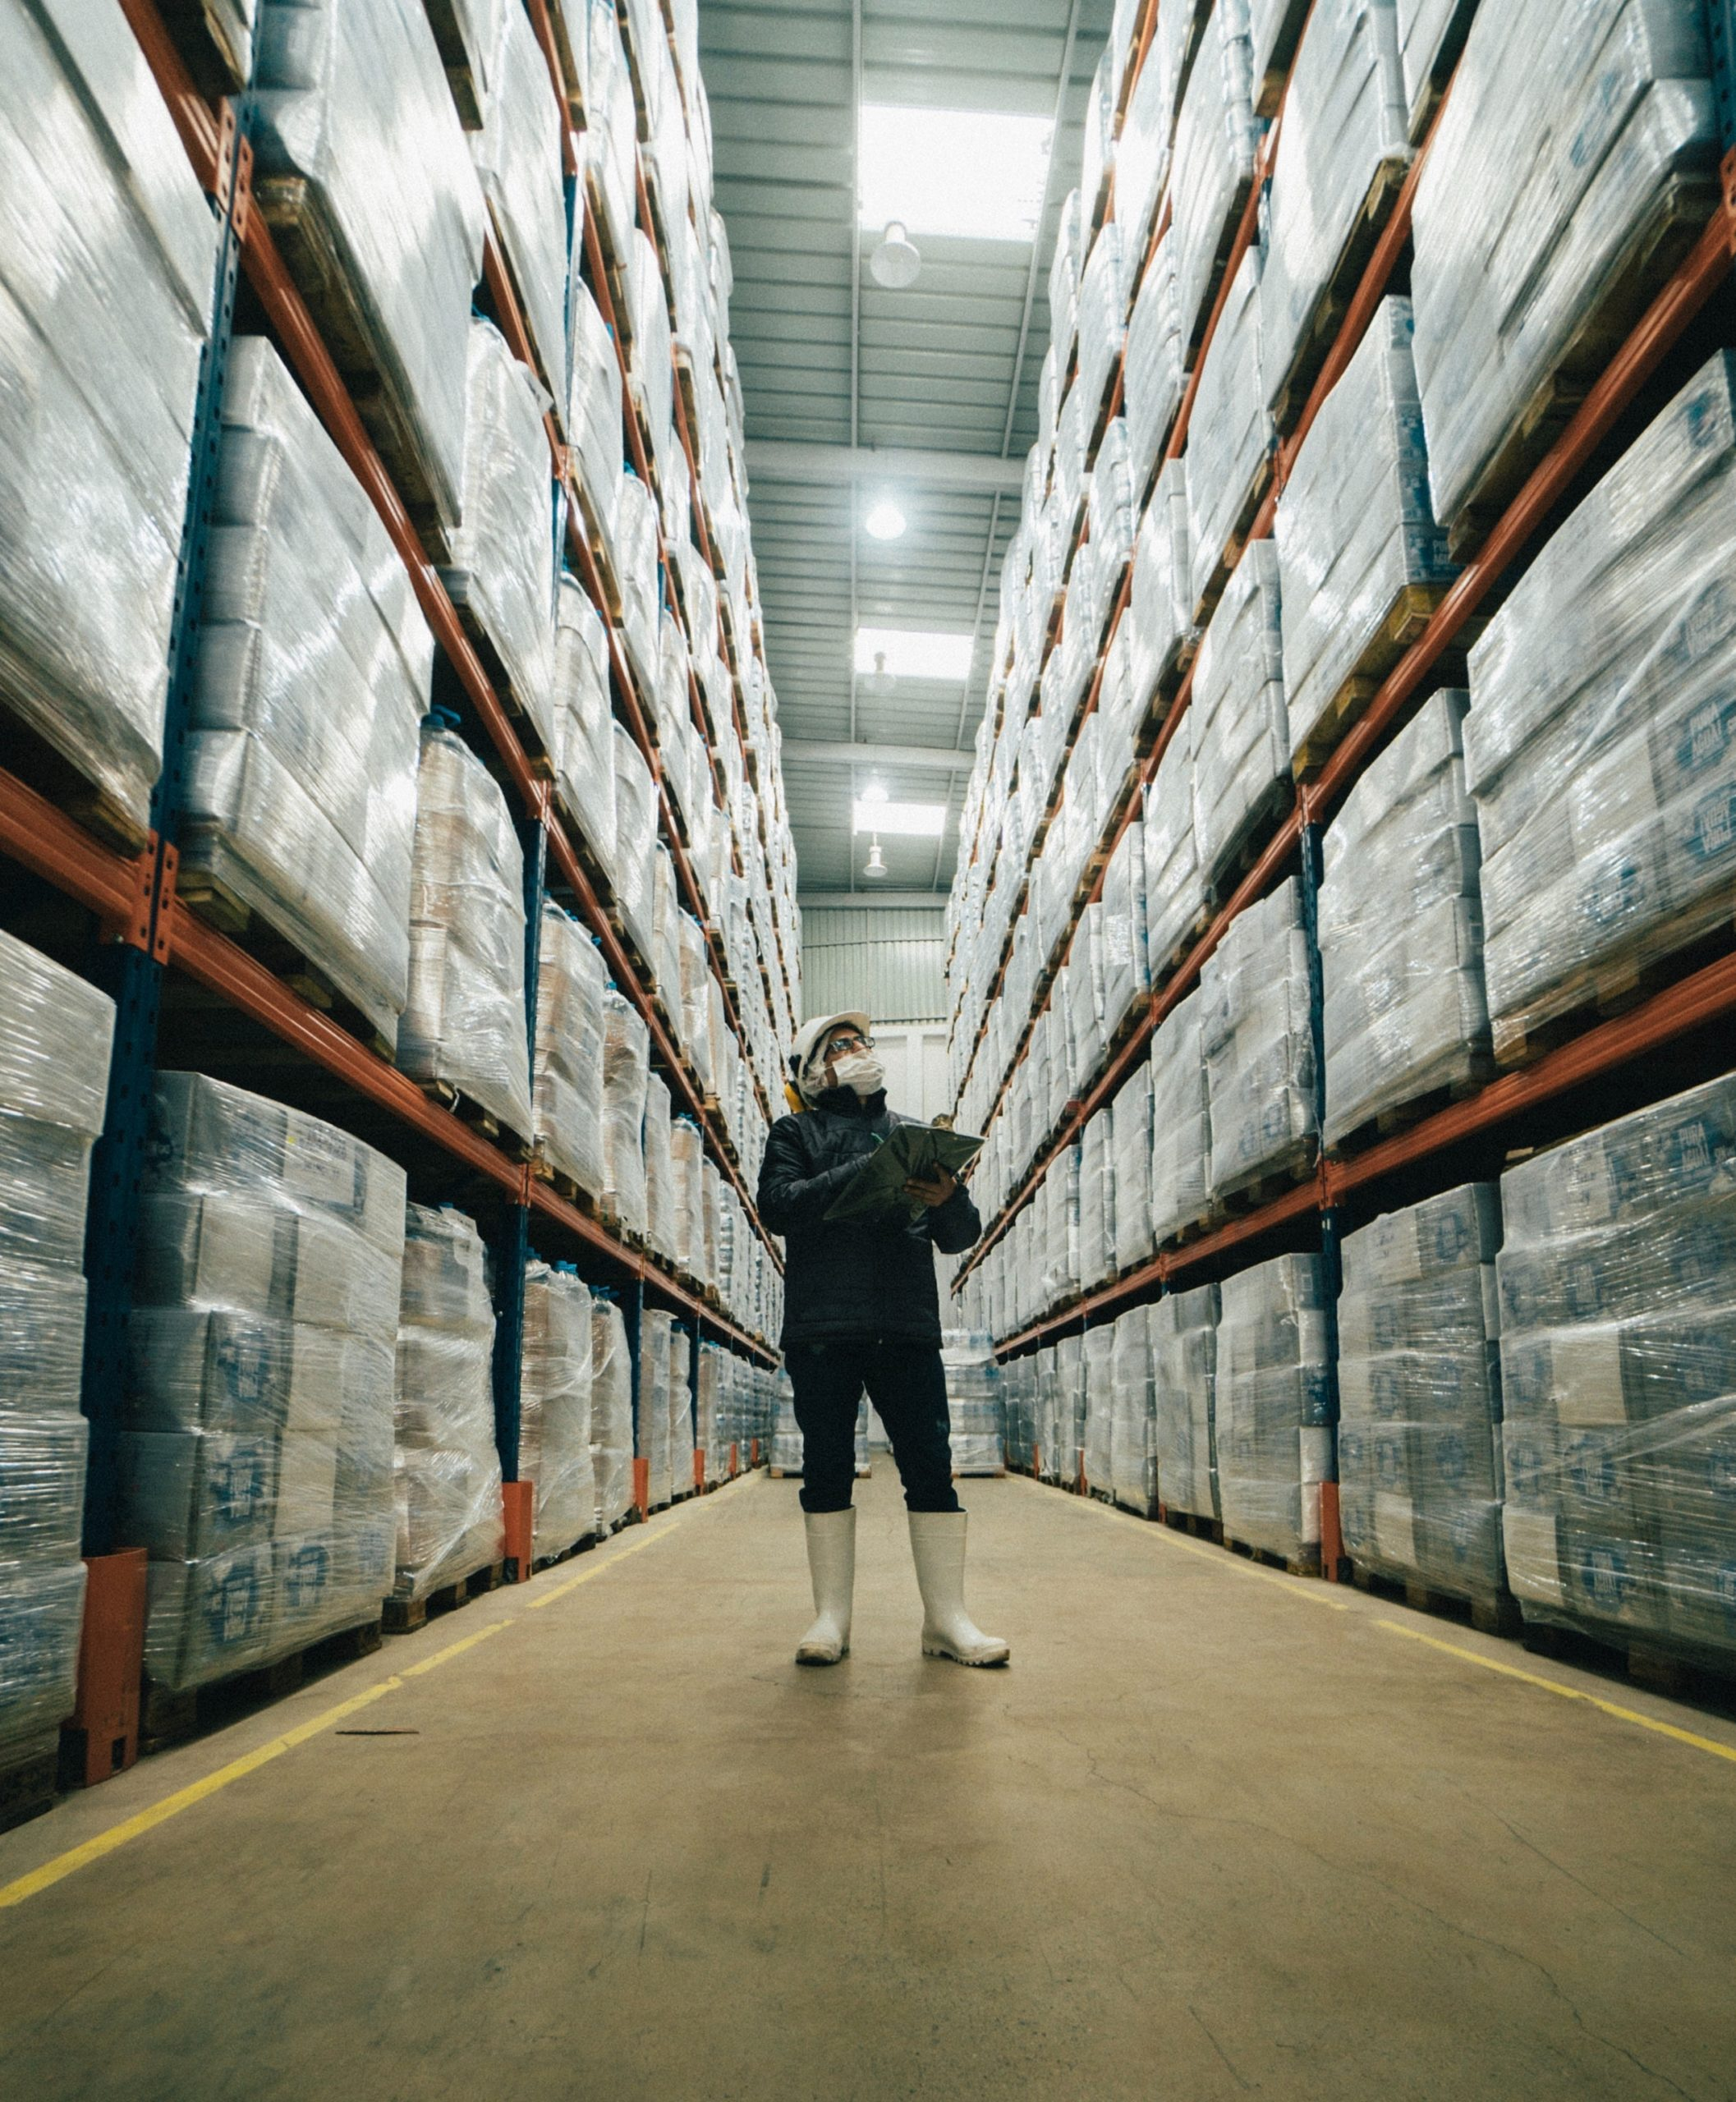 A warehouse man managing an Amazon inventory while reconciling the number of the merchandize with that on his list